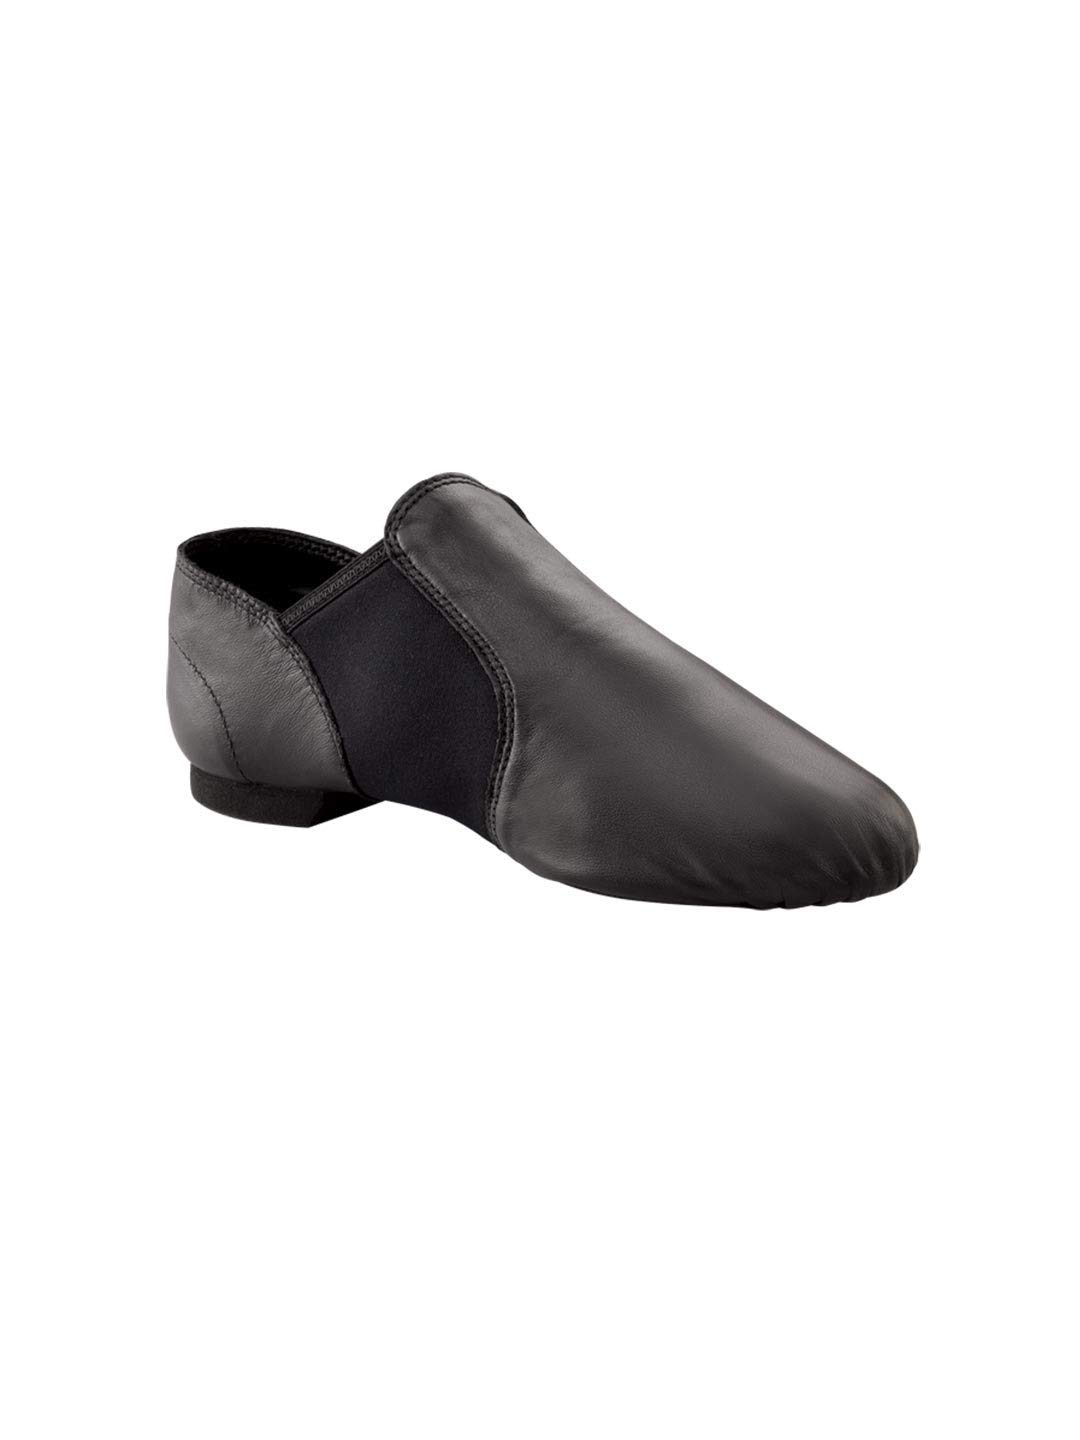 Capezio Women's Economy Jazz Slip On, Black, 7M US by Capezio